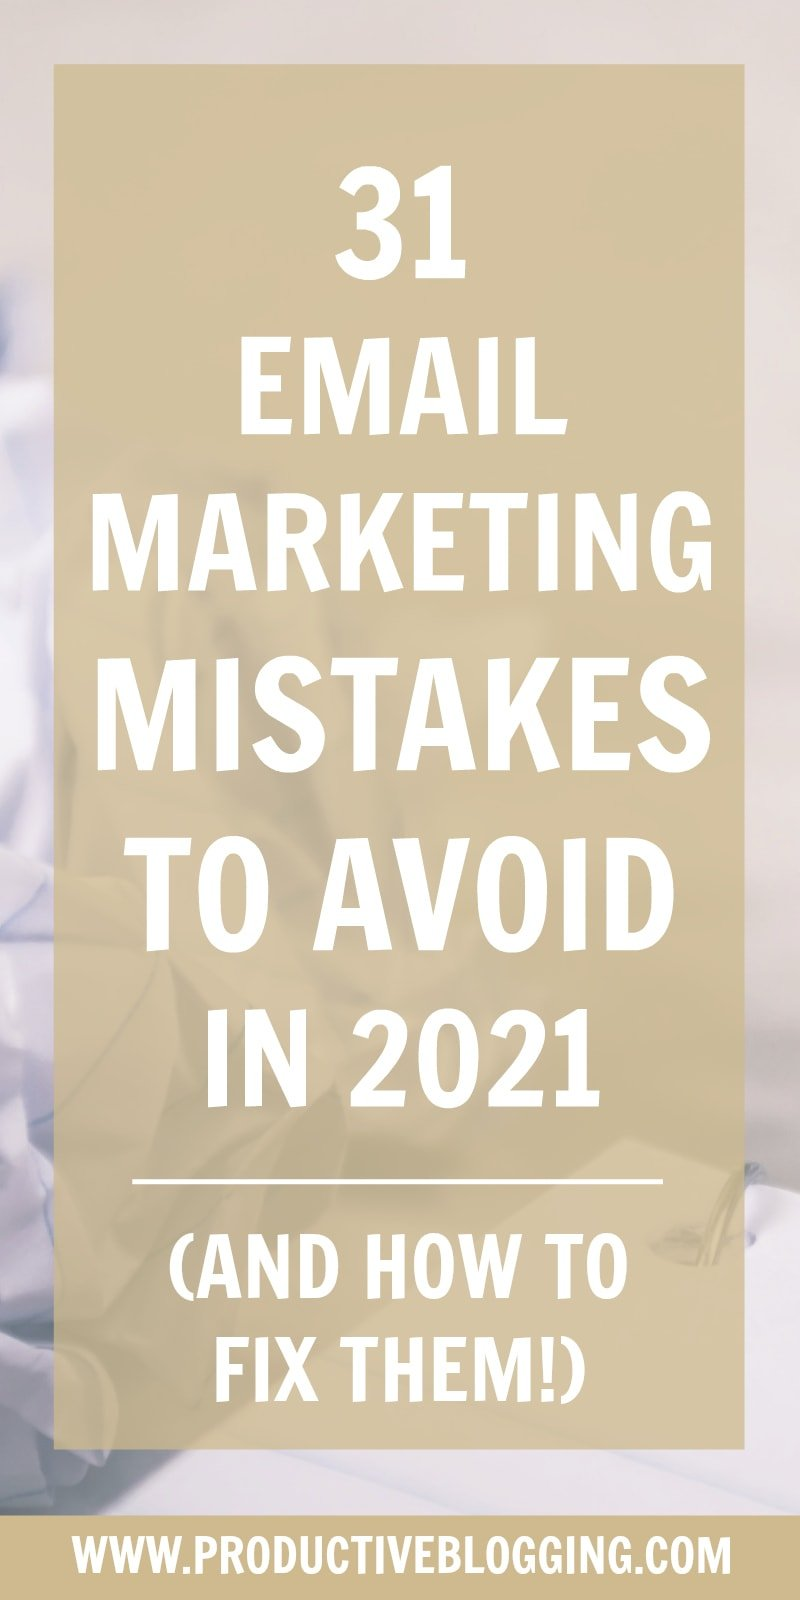 Email marketing is an essential part of blogging… but are you doing it right? Here are 31 Email Marketing Mistakes to avoid in 2021 (and how to fix them!) #emailmarketing #emailmarketingtips #emailmarketingforbloggers #emailmarketingmistakes #emailmarketing2021 #bloggingtips #blogging #bloggers #emaillist #listbuilding #subscribers #convertkit #makemoneyblogging #bloggingformoney #productivity #productivitytips #productivityhacks #productivityhabits #productiveblogging